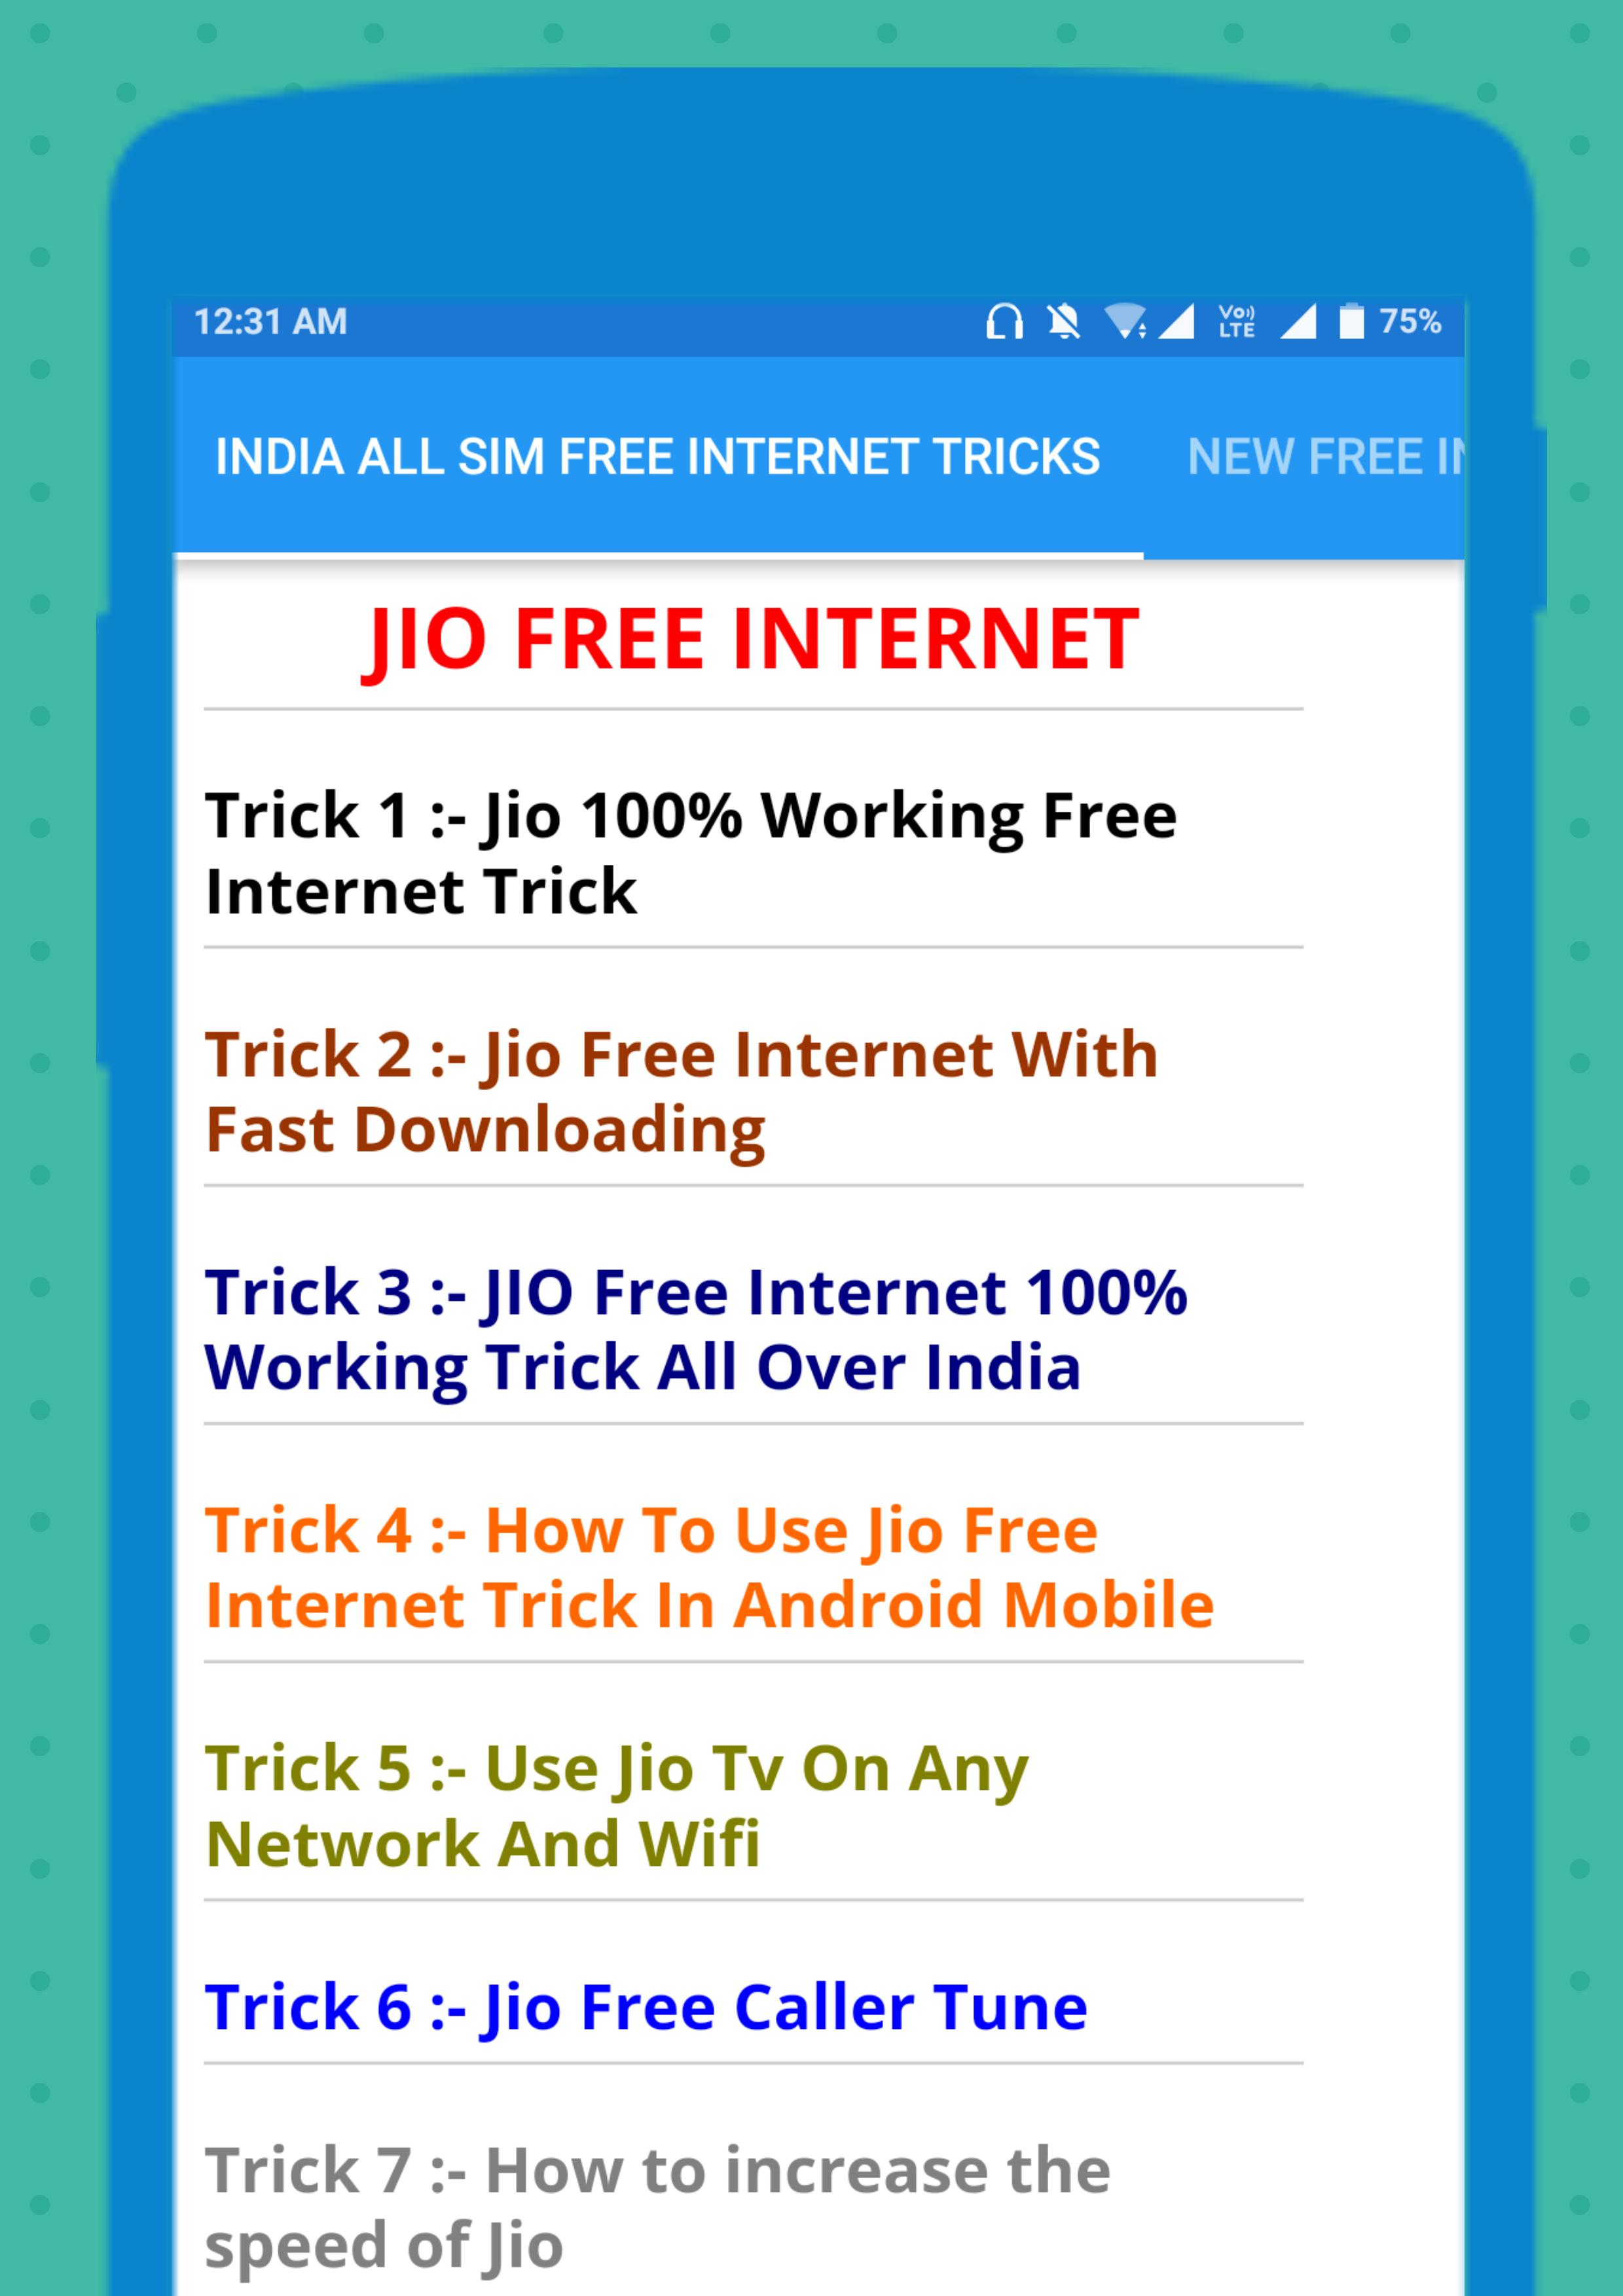 INDIA ALL SIM FREE INTERNET TRICKS for Android - APK Download